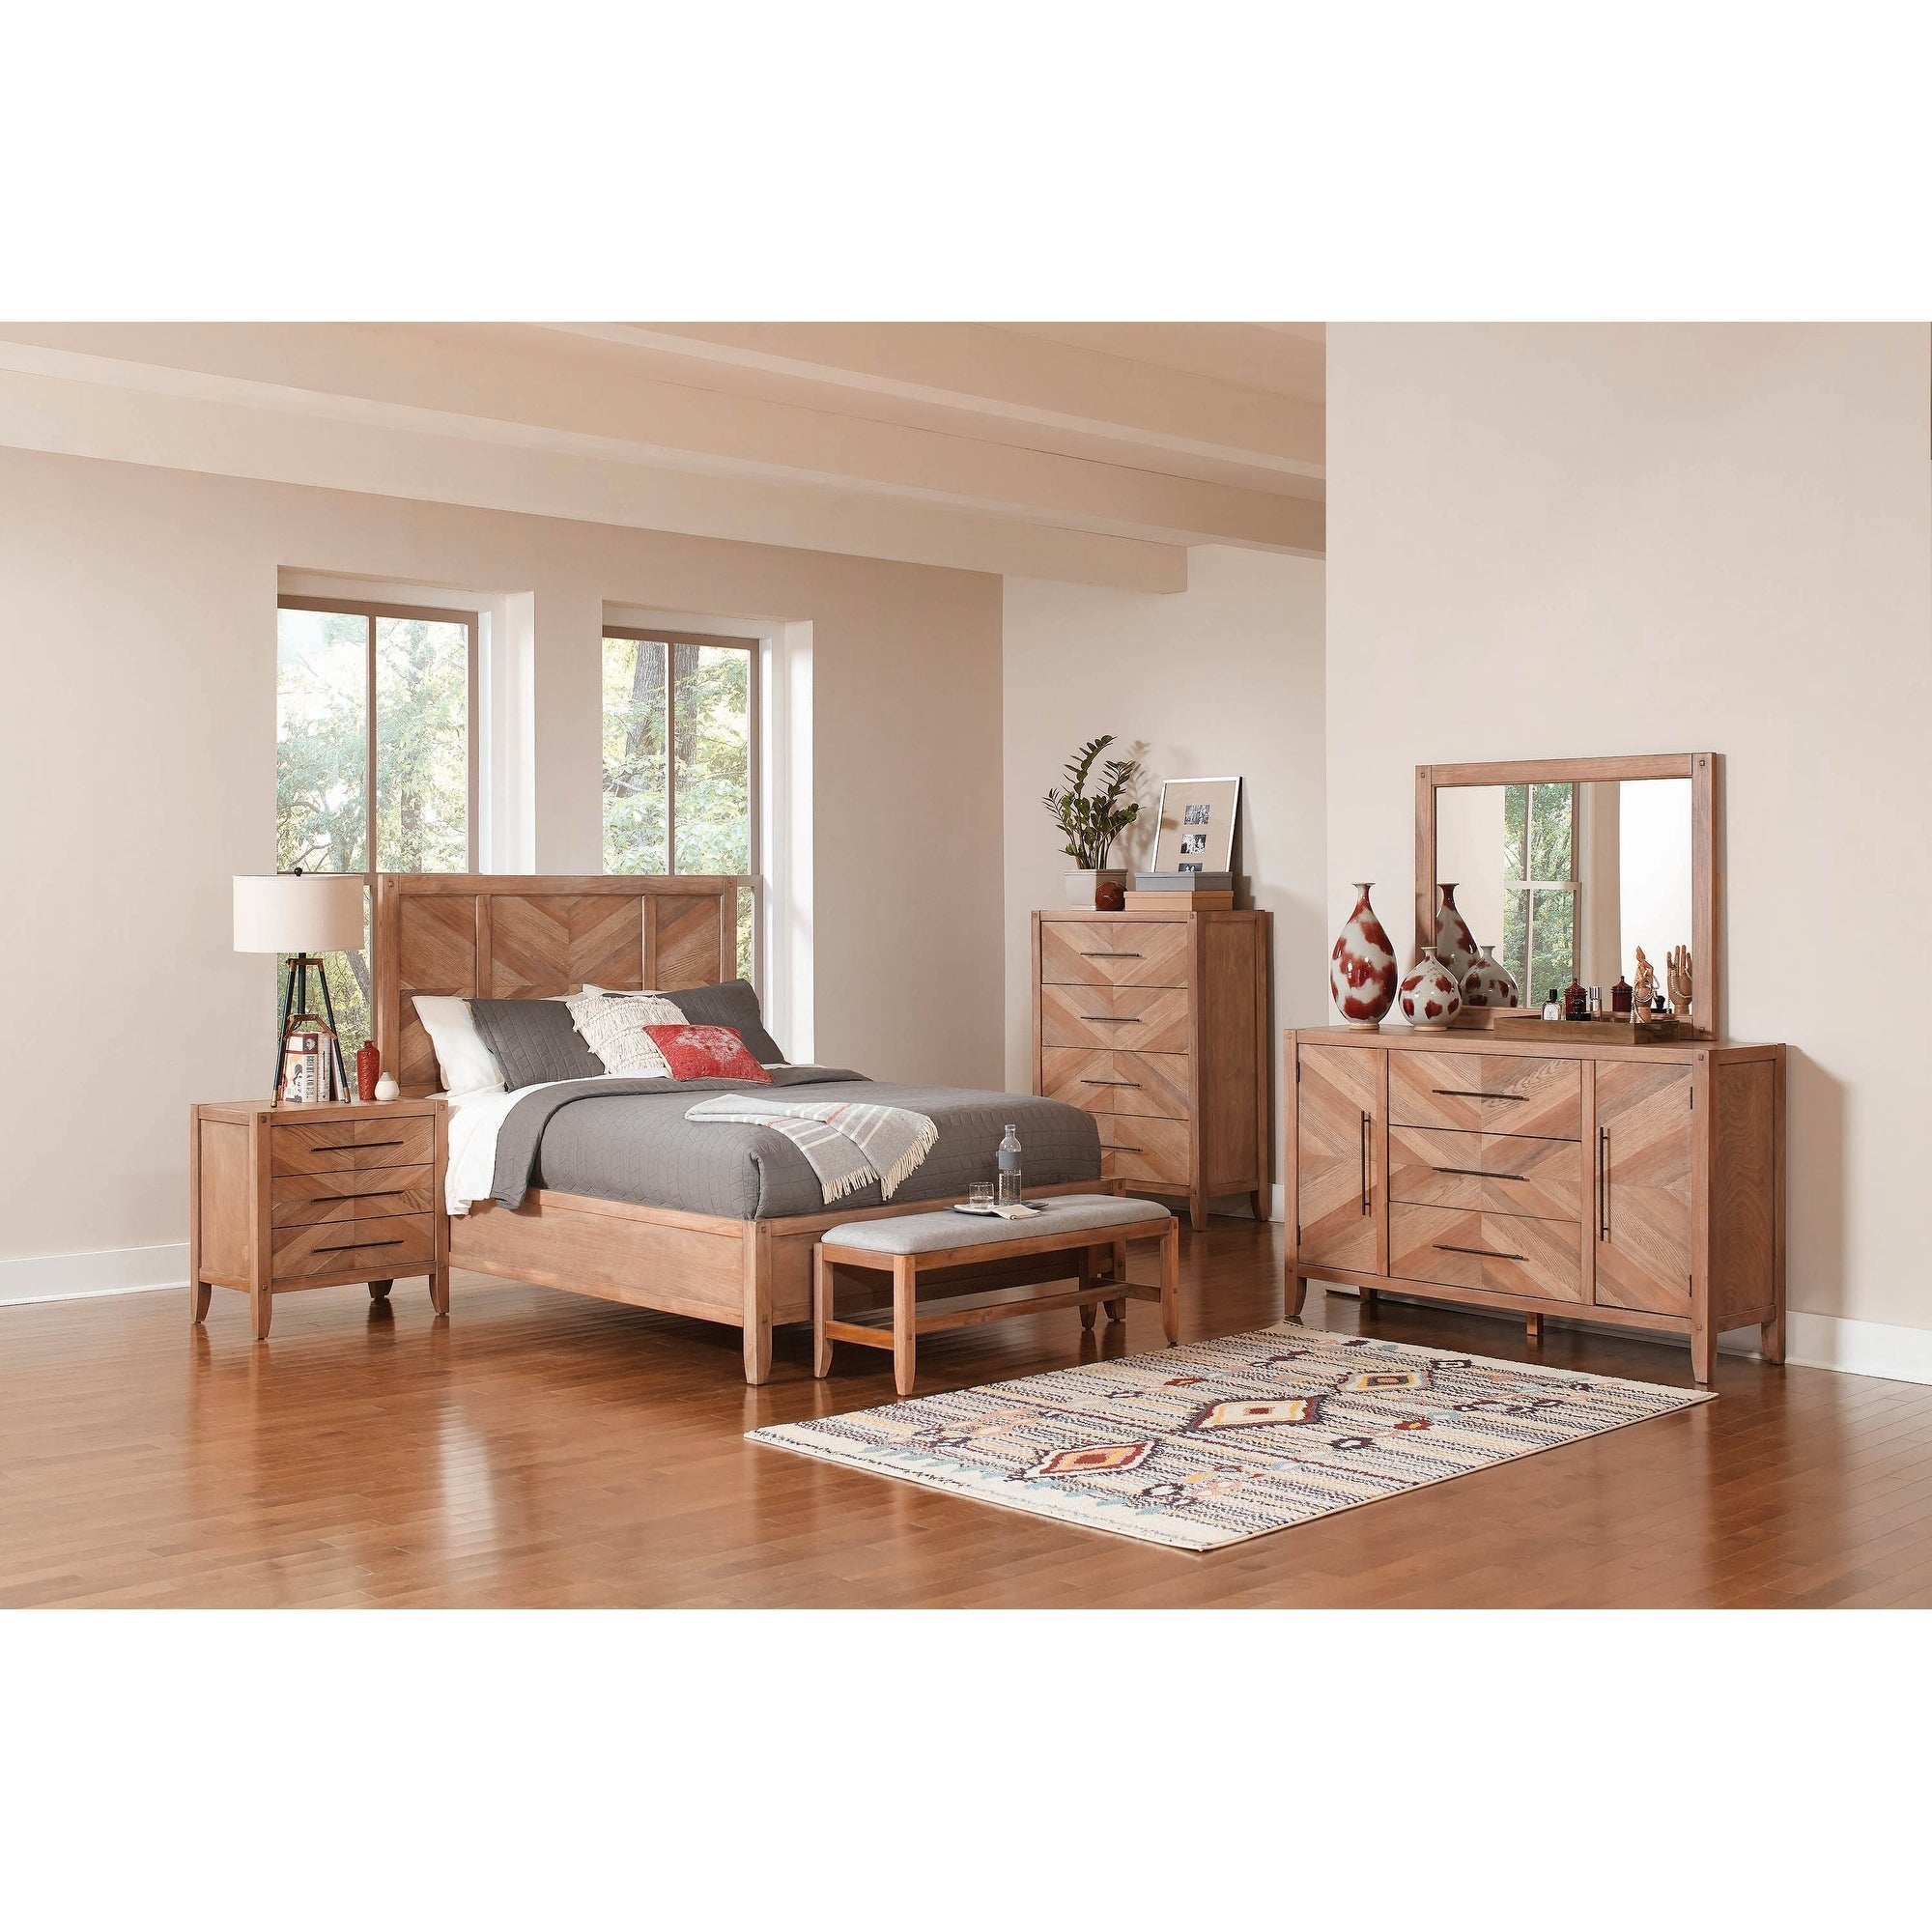 Shop Pensacola White Washed Natural 5 Piece Bedroom Set With 2 Nightstands On Sale Overstock 28254659,United Airlines Car Seat